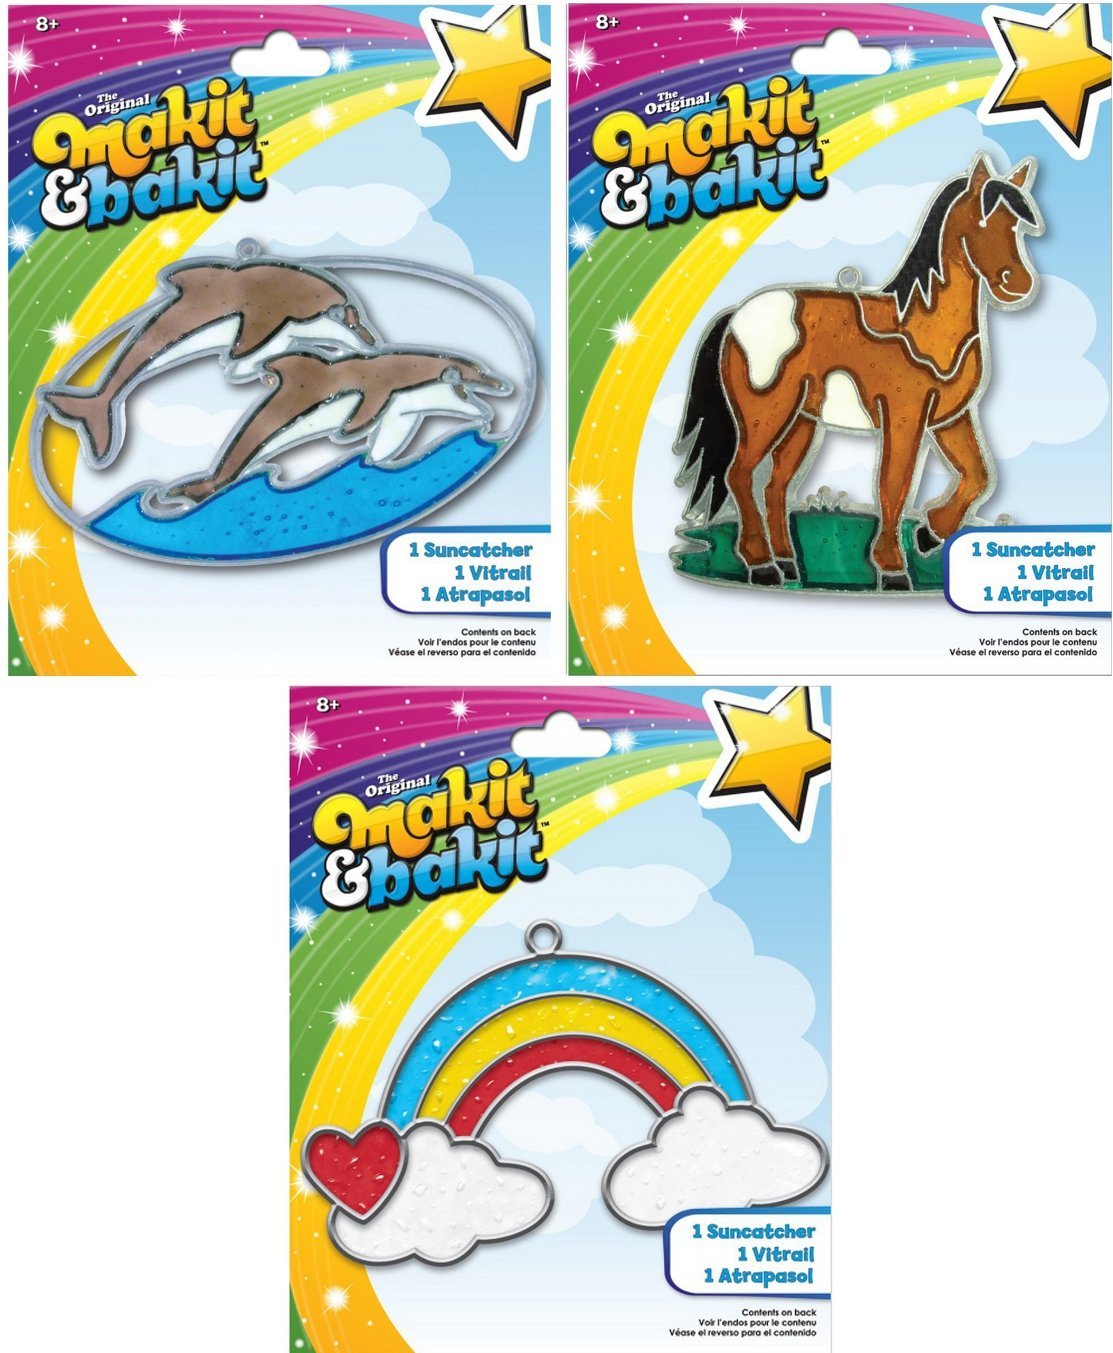 Suncatcher Kits - Dolphins (1), Horse (1), Rainbow with Clouds (1) - by Makit & Bakit / Colorbok - sun catcher stained glass art project for kids - Boys, girls, and children 8 years & up - Bundle of 3